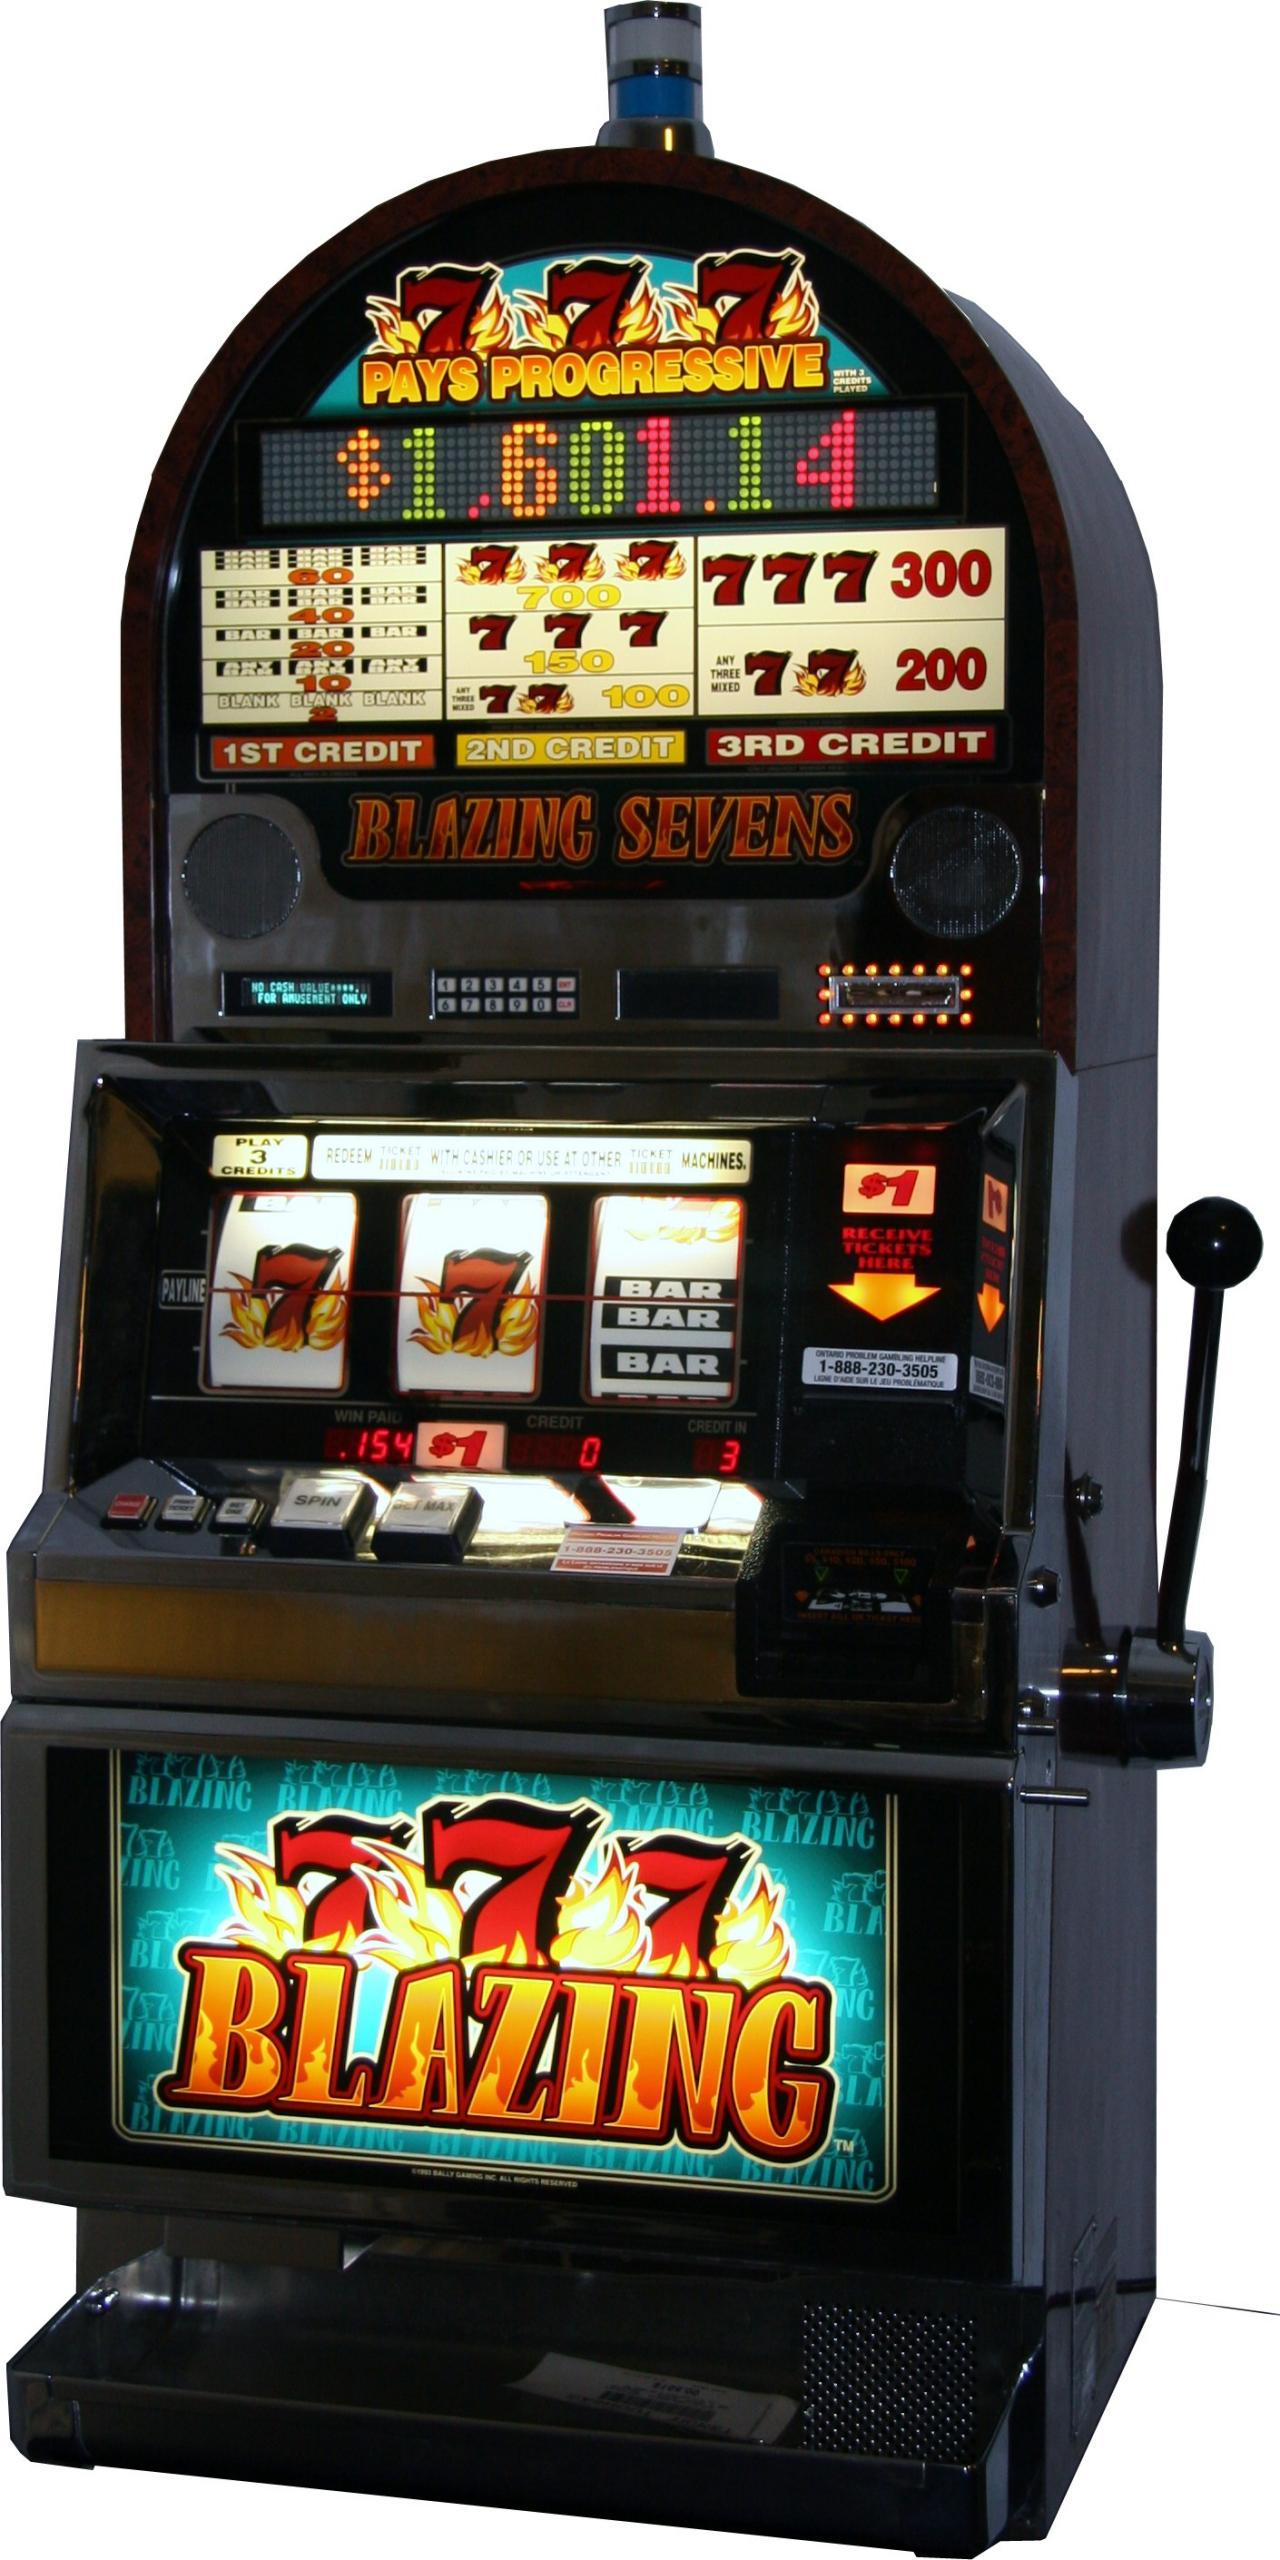 blazing 7s slot machine